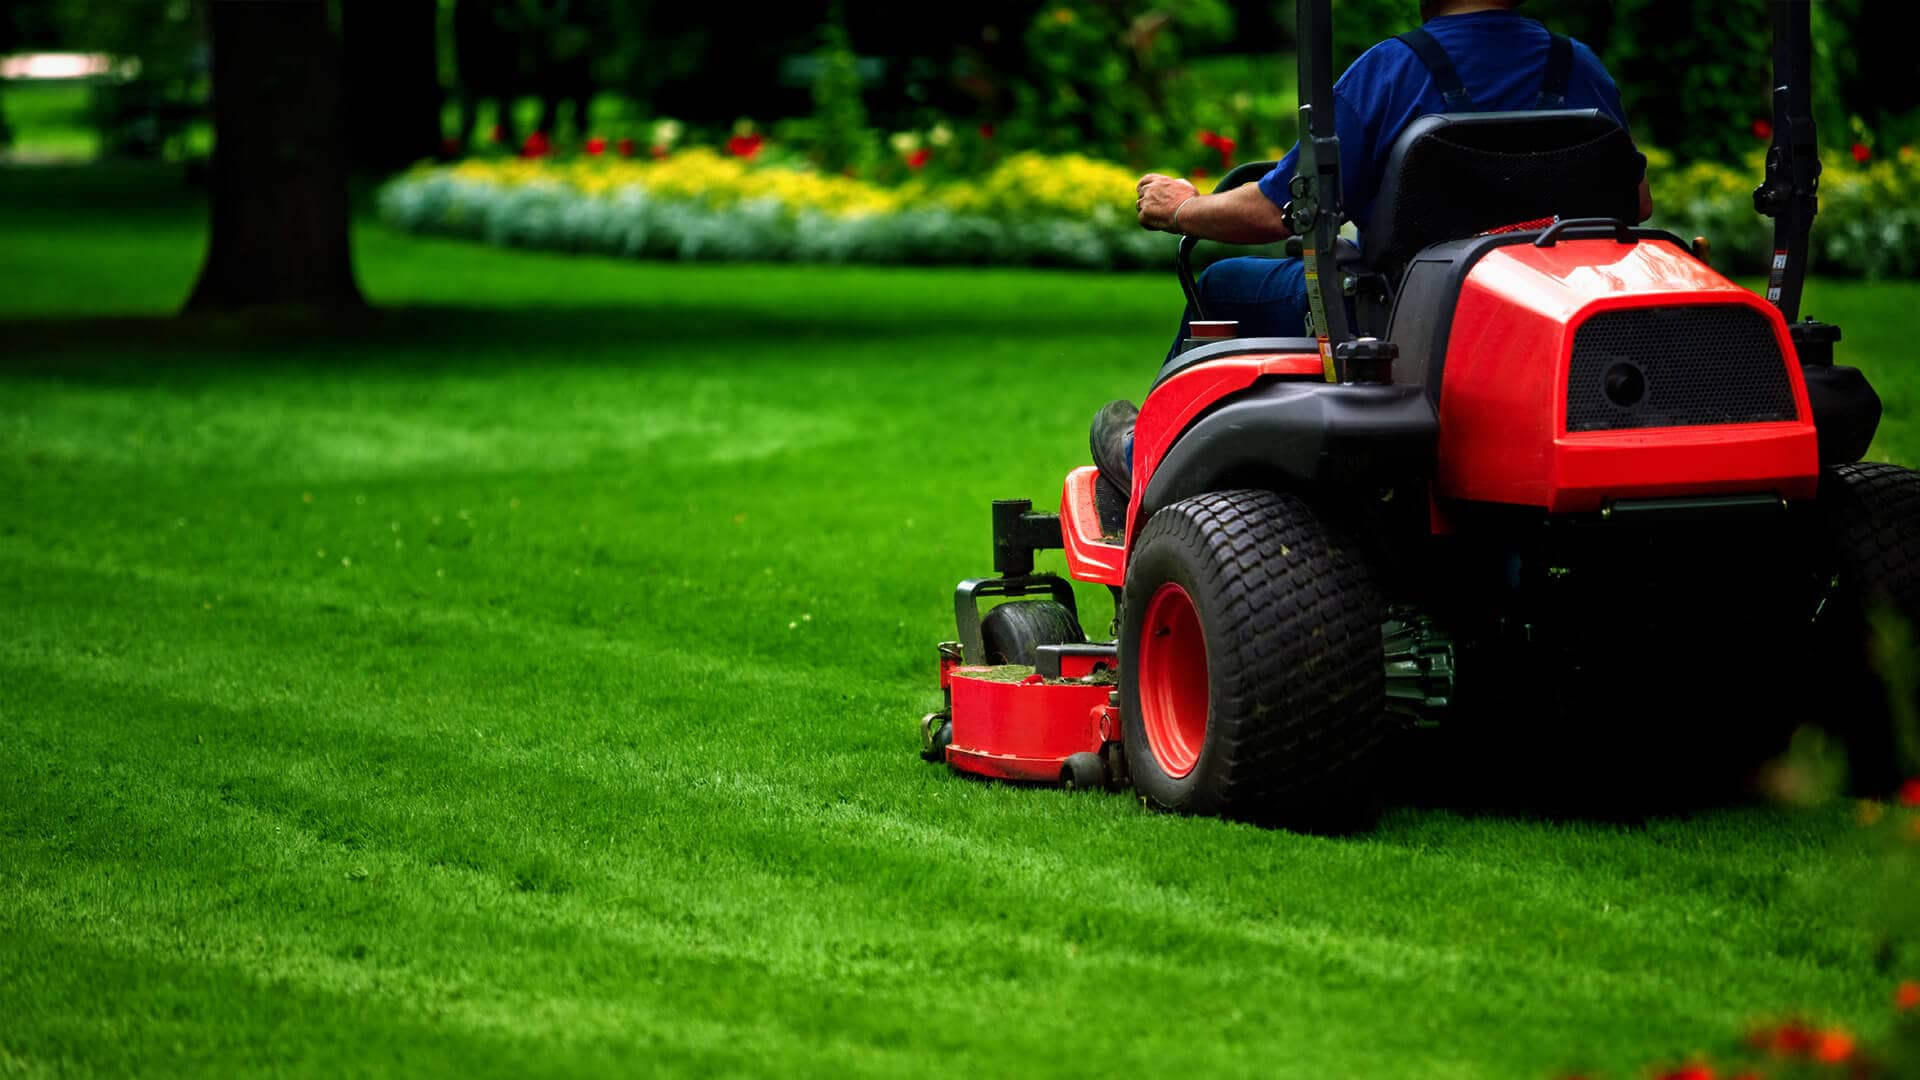 Top 12 Best Lawn Mower: 2020 Reviews & Buying Guide 1